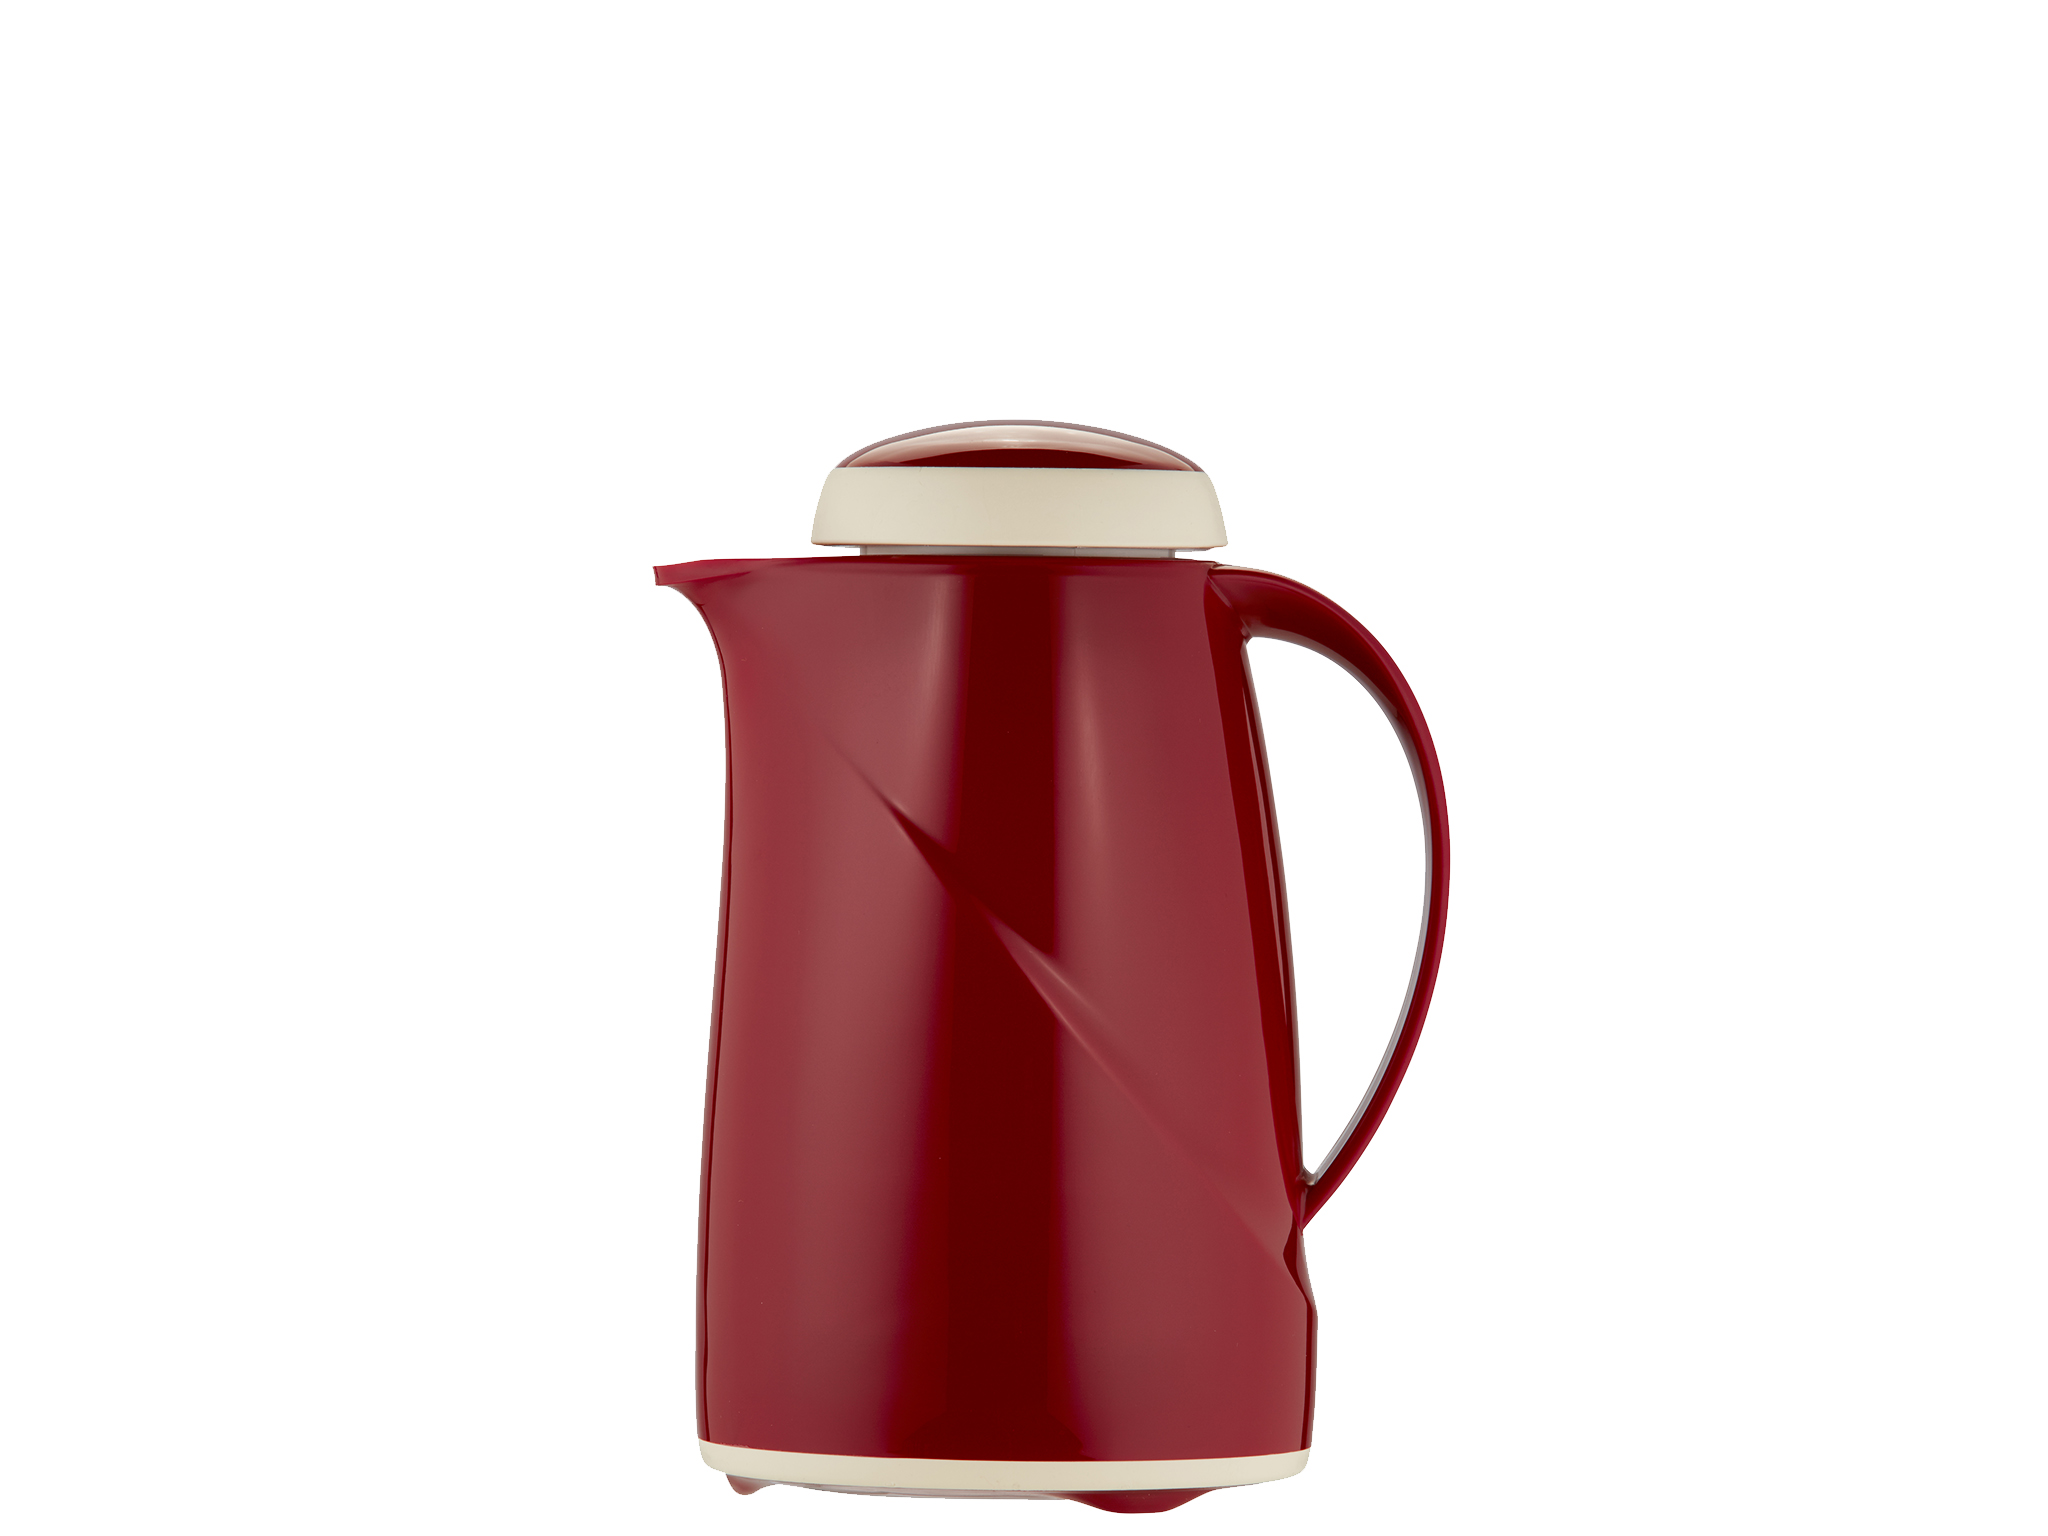 2942-046 - Vacuum carafe red 0.6 L WAVE MINI - Helios